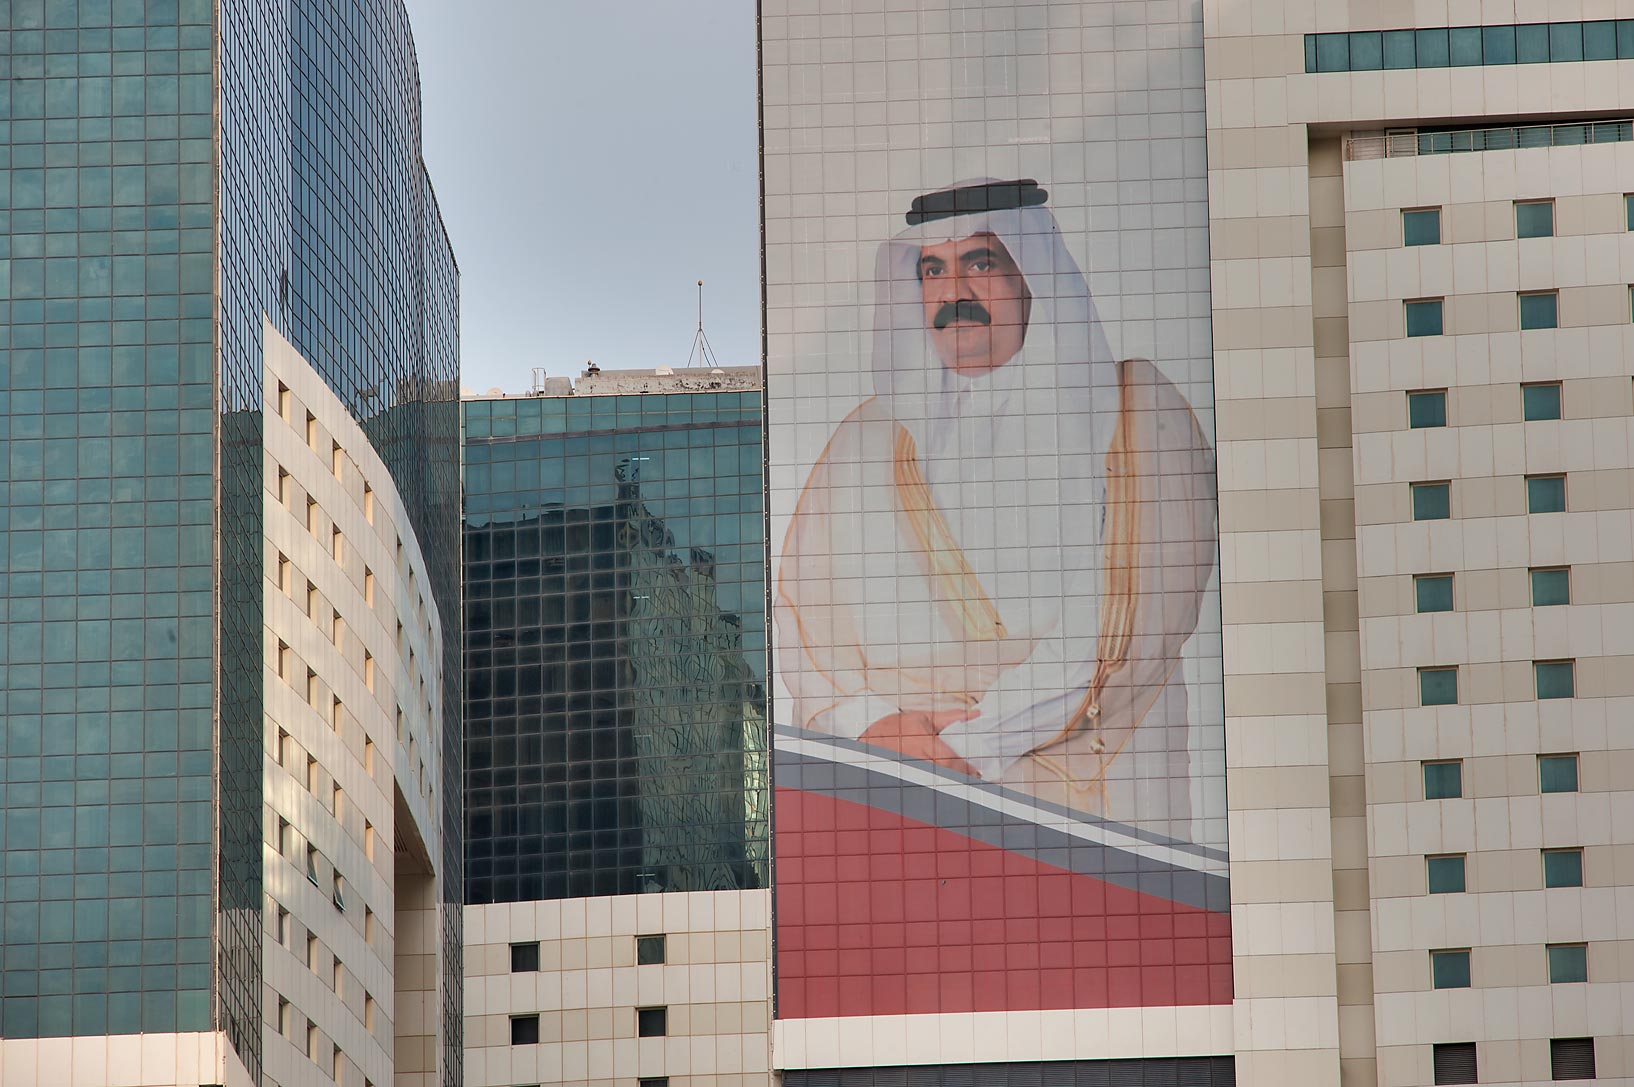 Giant portrait of a former emir Hamad bin Khalifa...Ezdan Tower in West Bay. Doha, Qatar